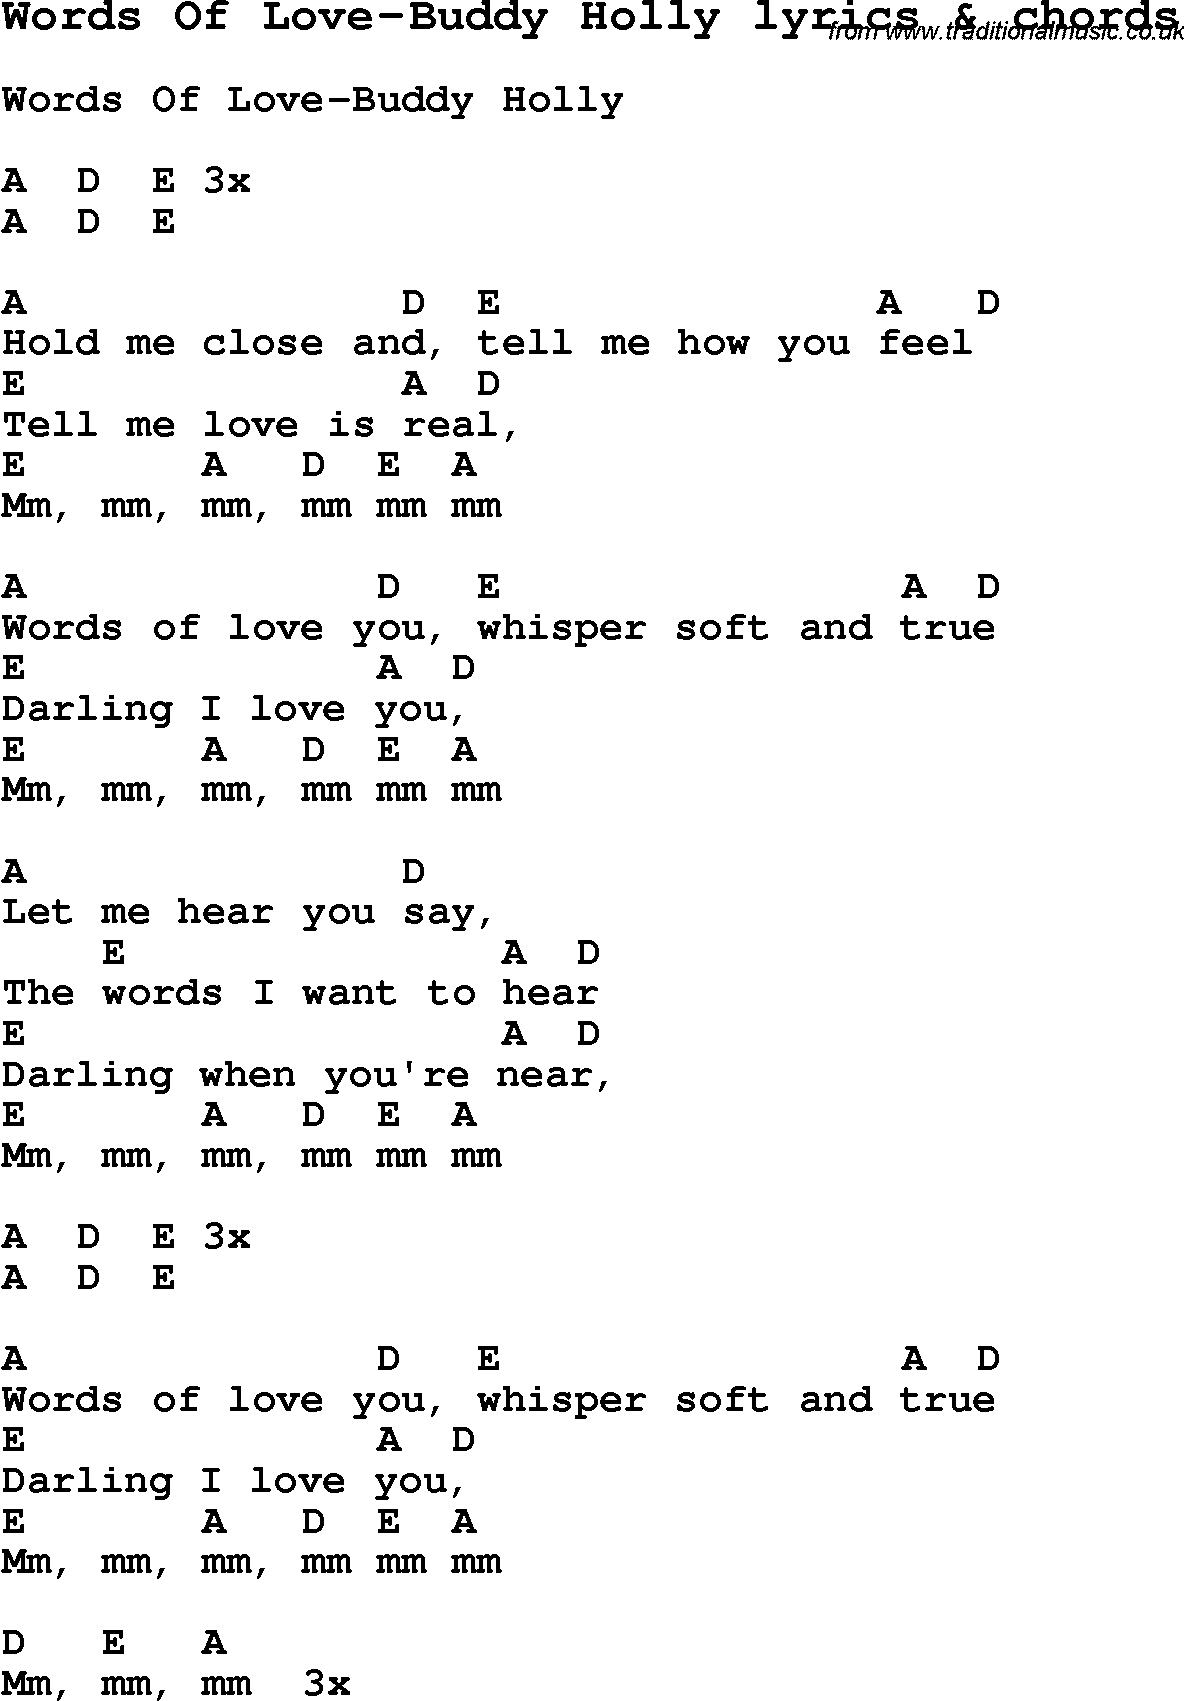 Inspirational Words Of Love Lyrics - family quotes